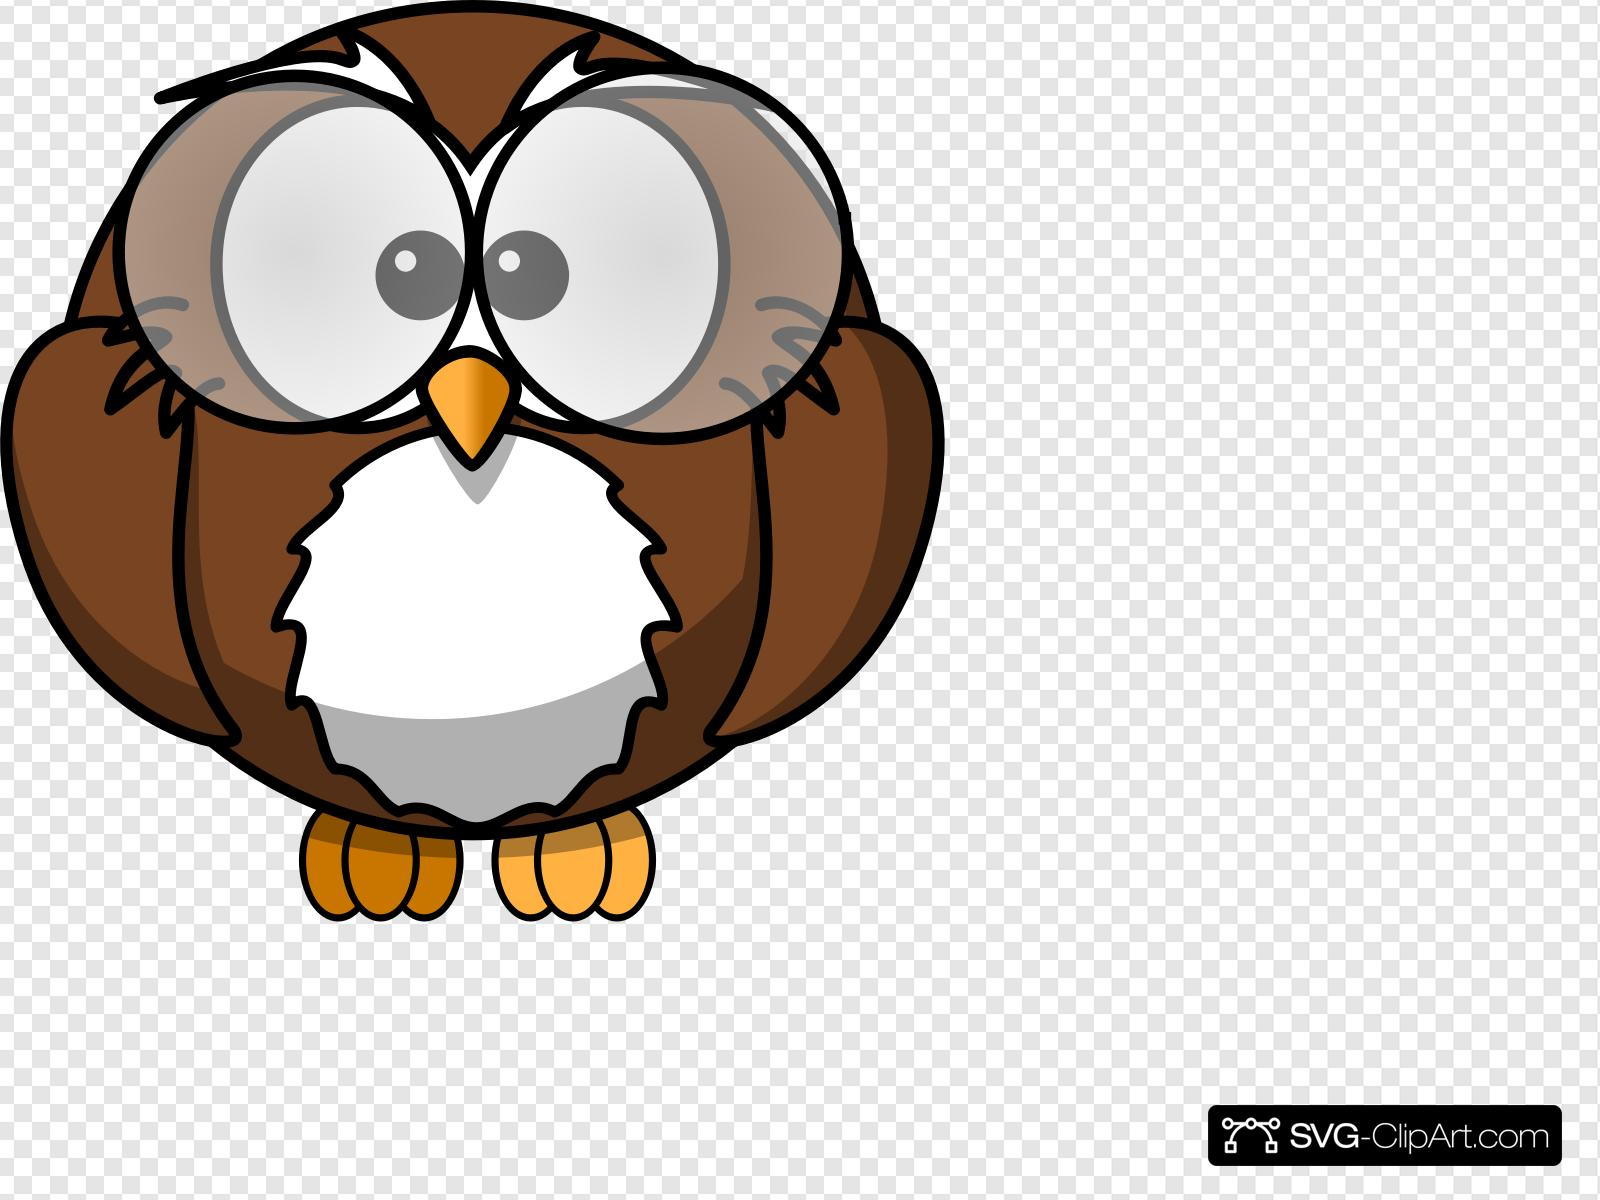 Owl With Glasses Clip art, Icon and SVG.